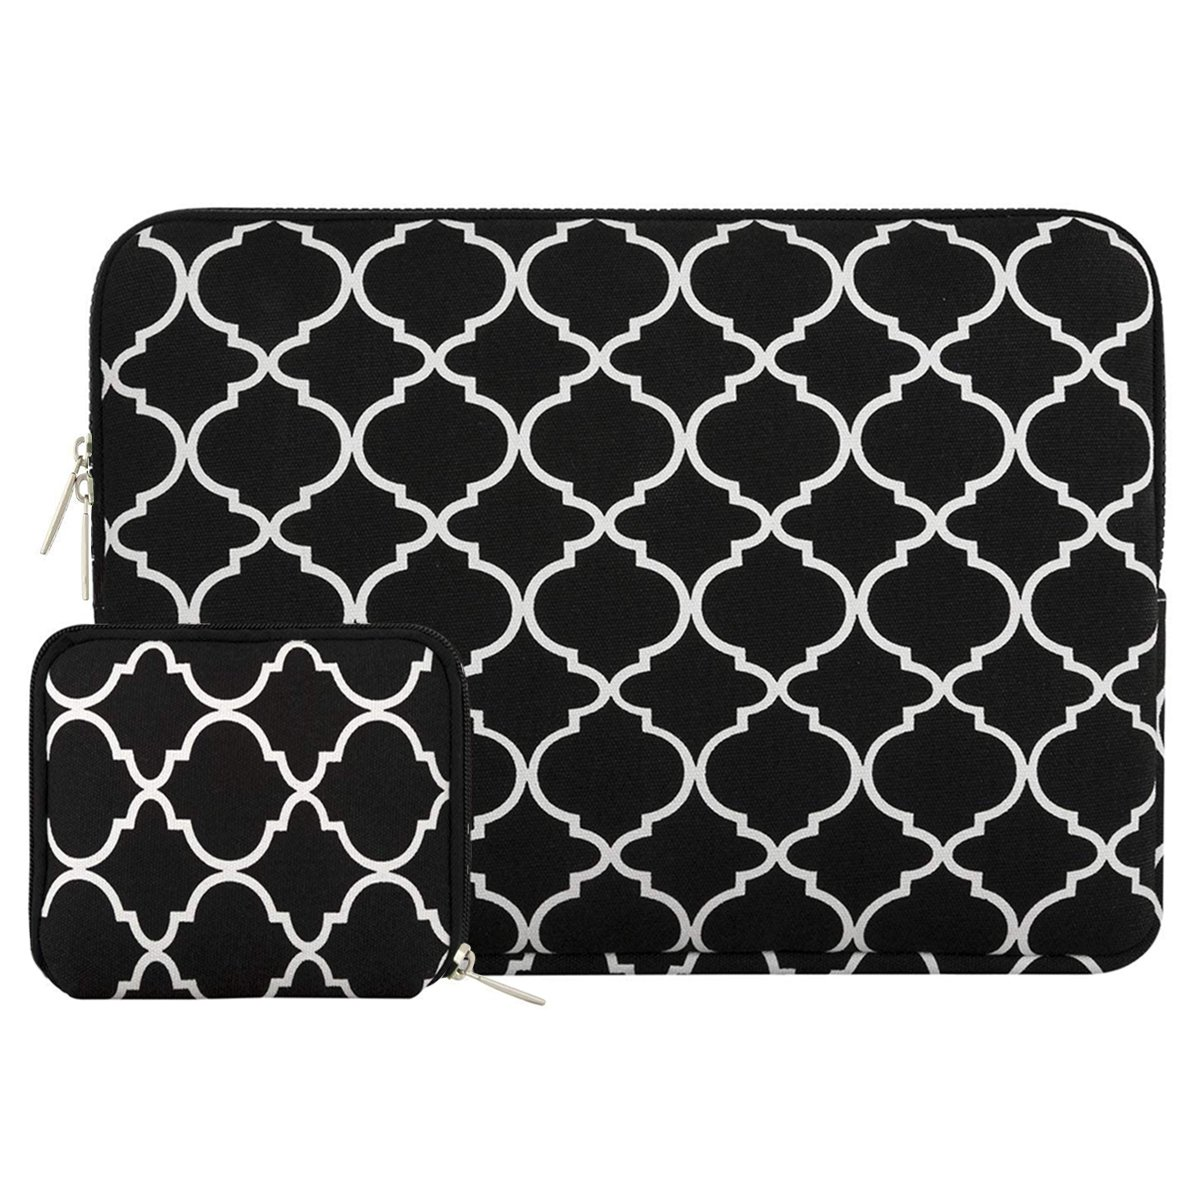 Mosiso Quatrefoil Style Canvas Fabric Laptop Sleeve Bag Cover for 13-13.3 Inch MacBook Pro, MacBook Air, Notebook with a Small Case, Black OT-13-Quatrefoil-Black